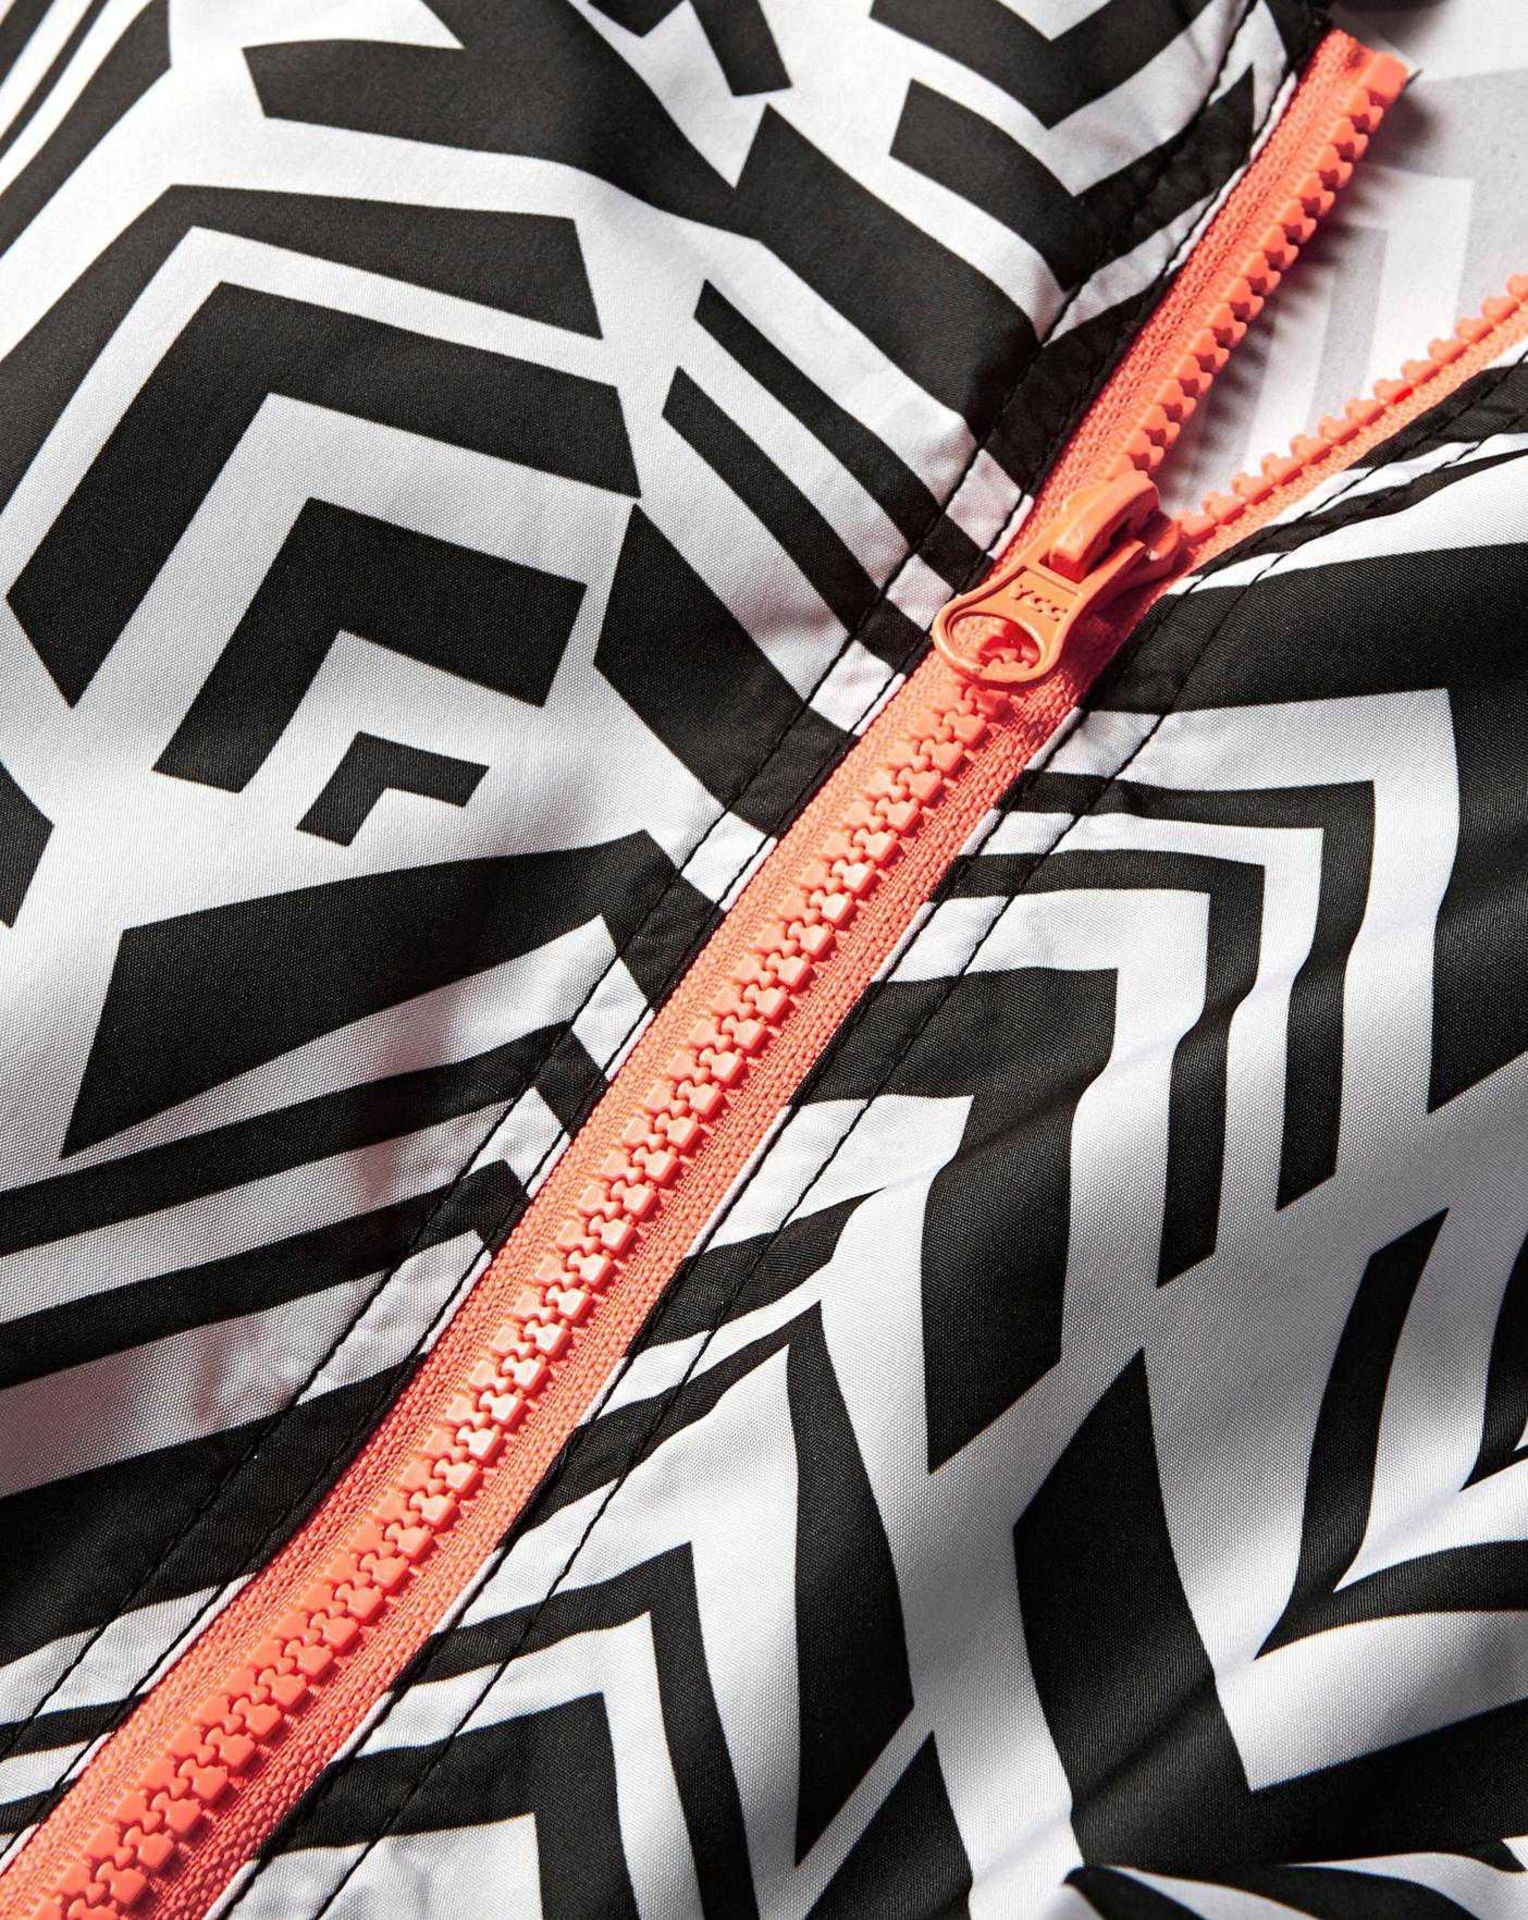 RRP £750 Lot To Contain 30 Brand New Bagged/Tagged Women'S Size 12/14 Black And White Geo Printed - Image 2 of 4